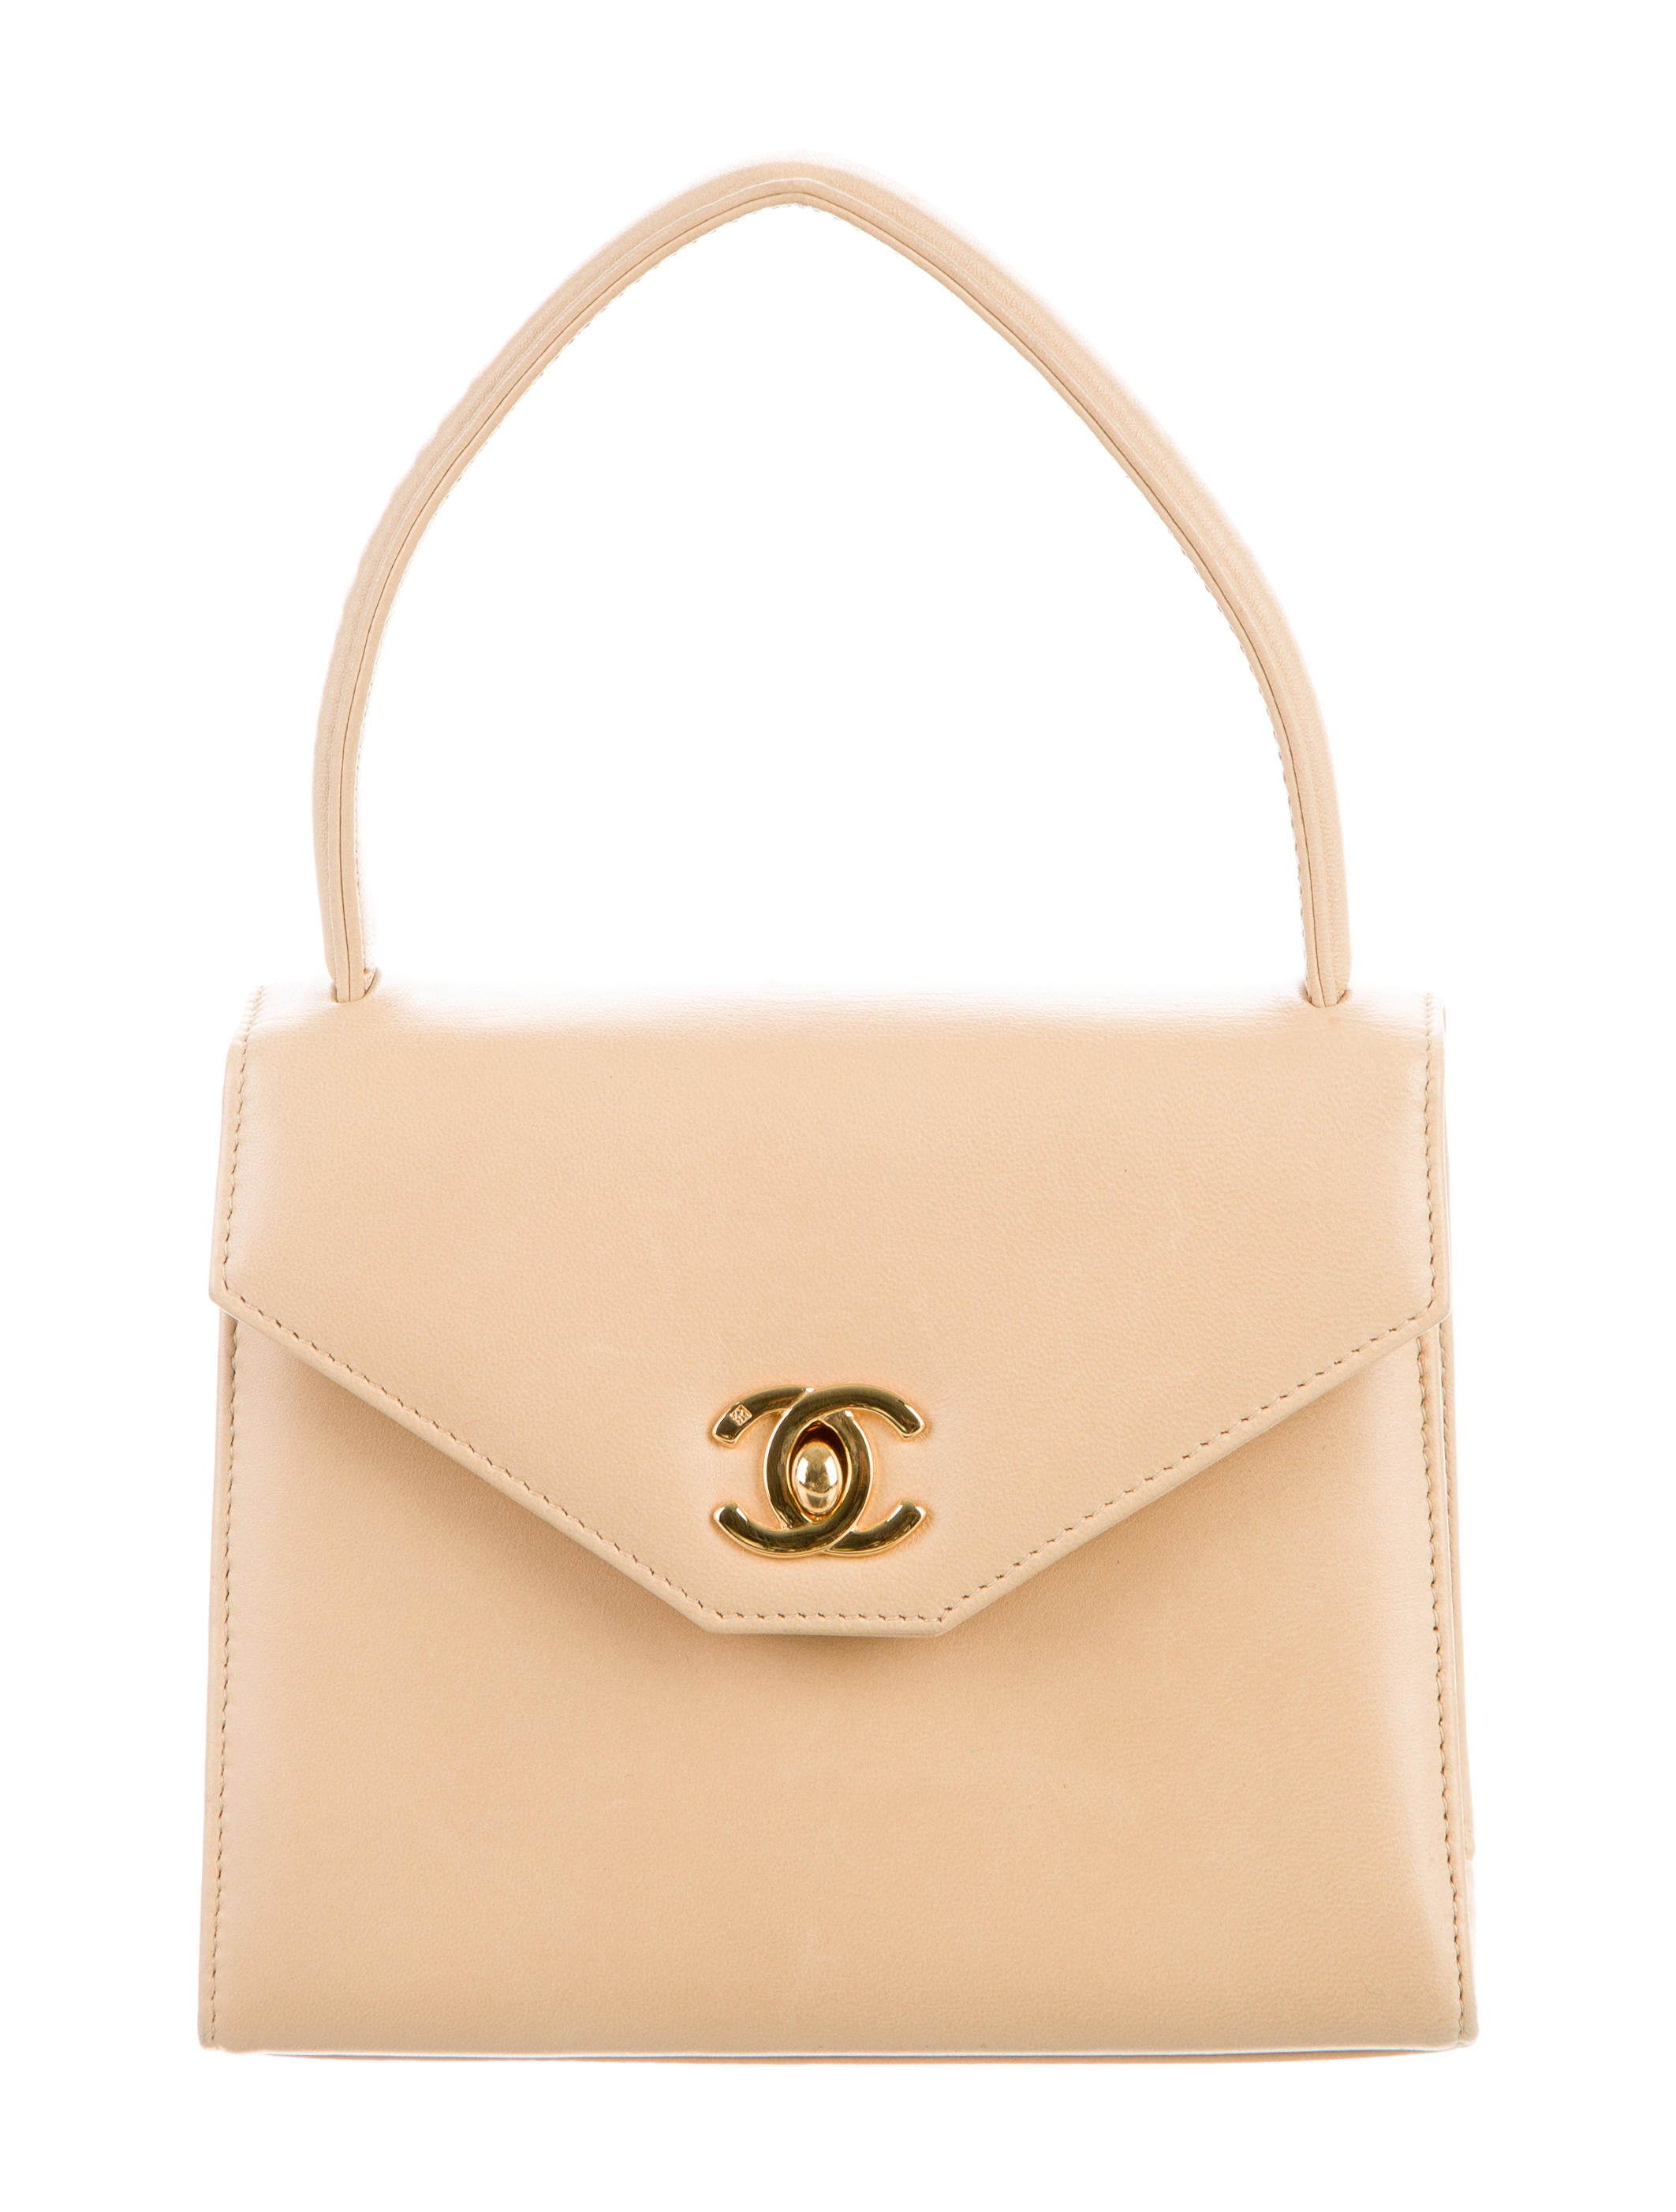 98d3a0d48fa4e8 Chanel Women's Mini Bags | Stanford Center for Opportunity Policy in ...